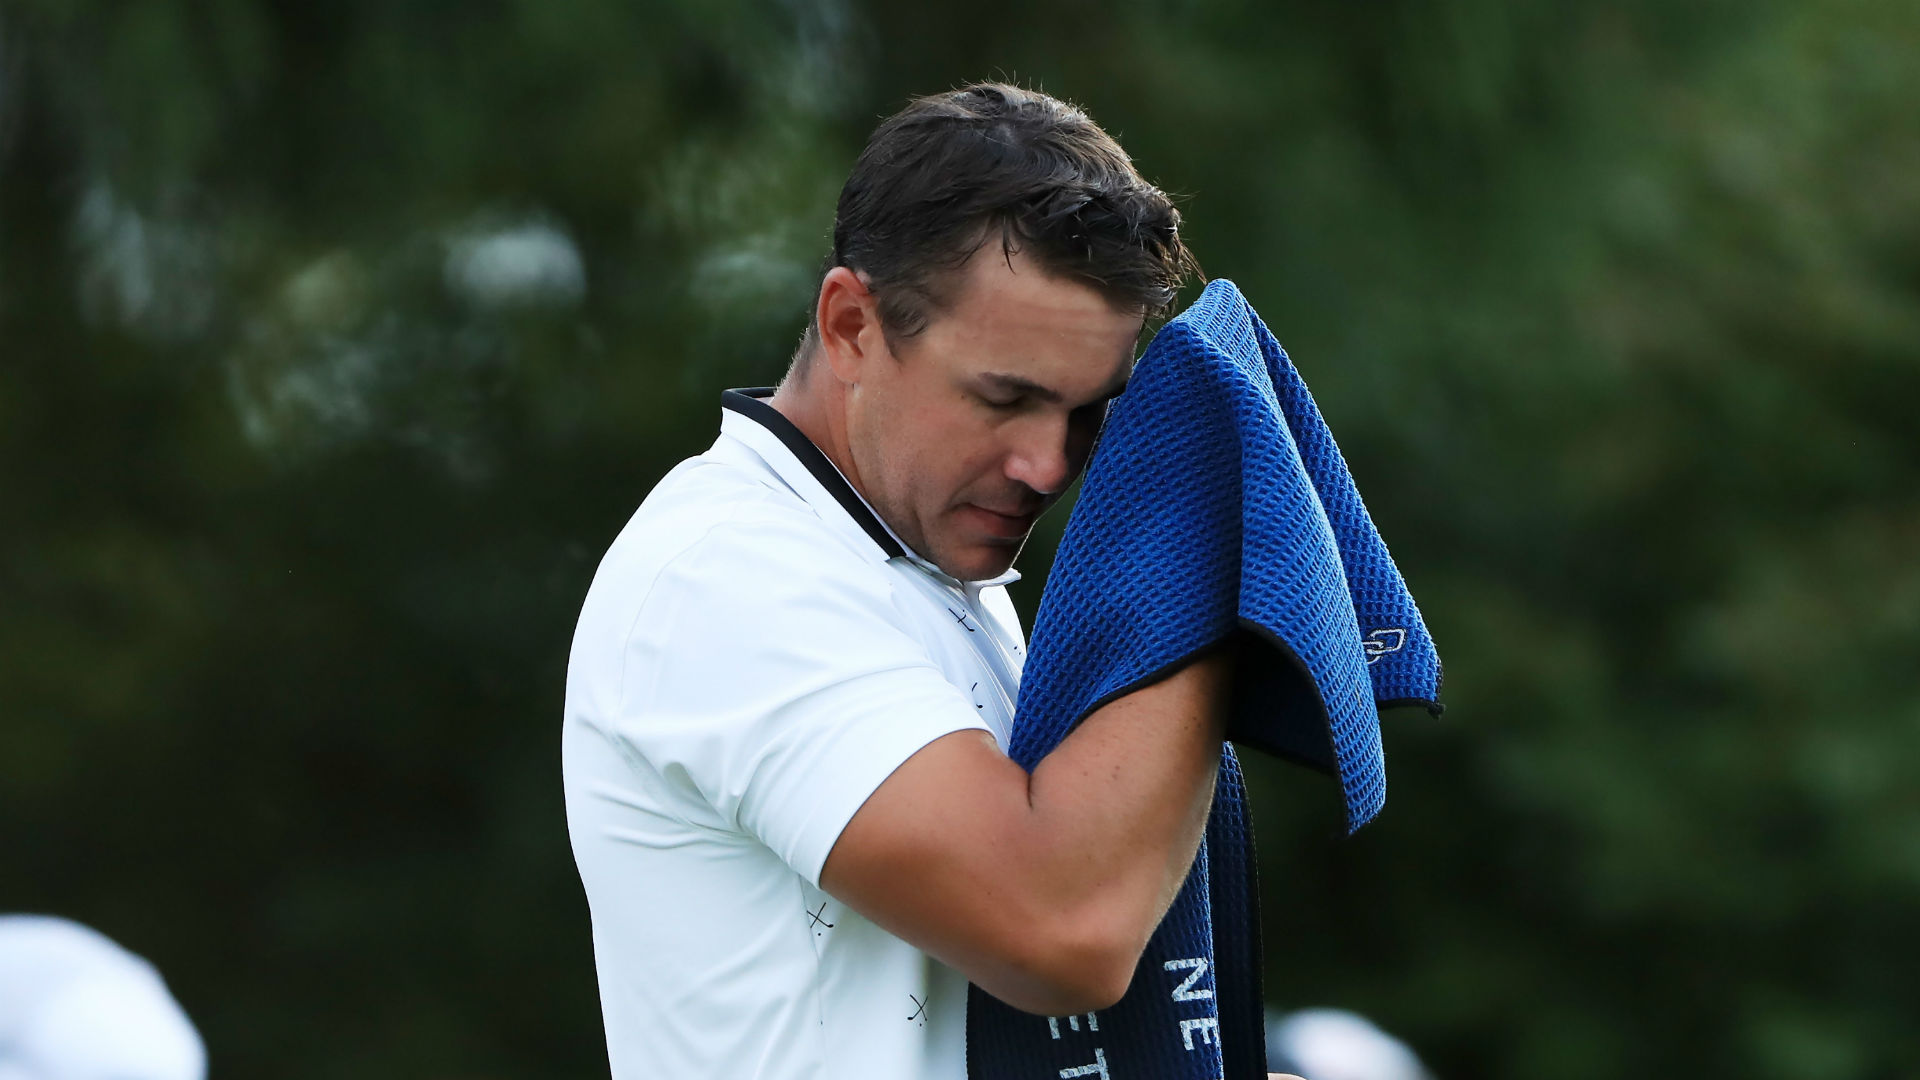 Koepka streaking clear at East Lake but baffled by nude photo criticism